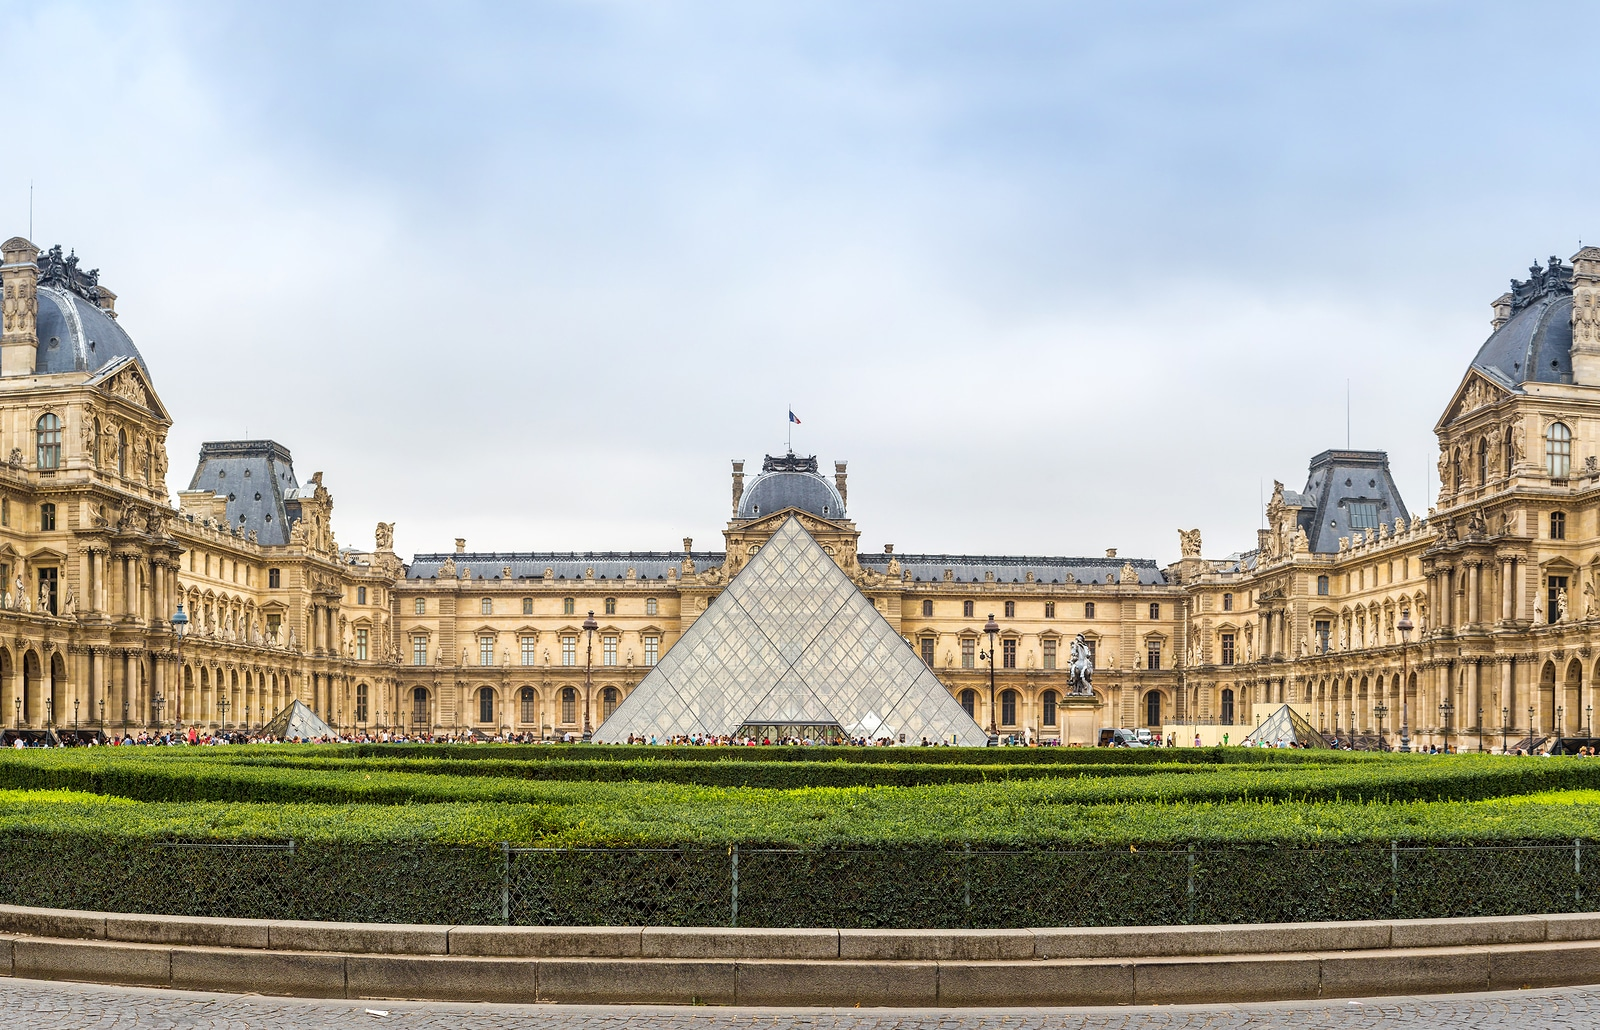 Things to do in Paris: Visit the Louvre museum